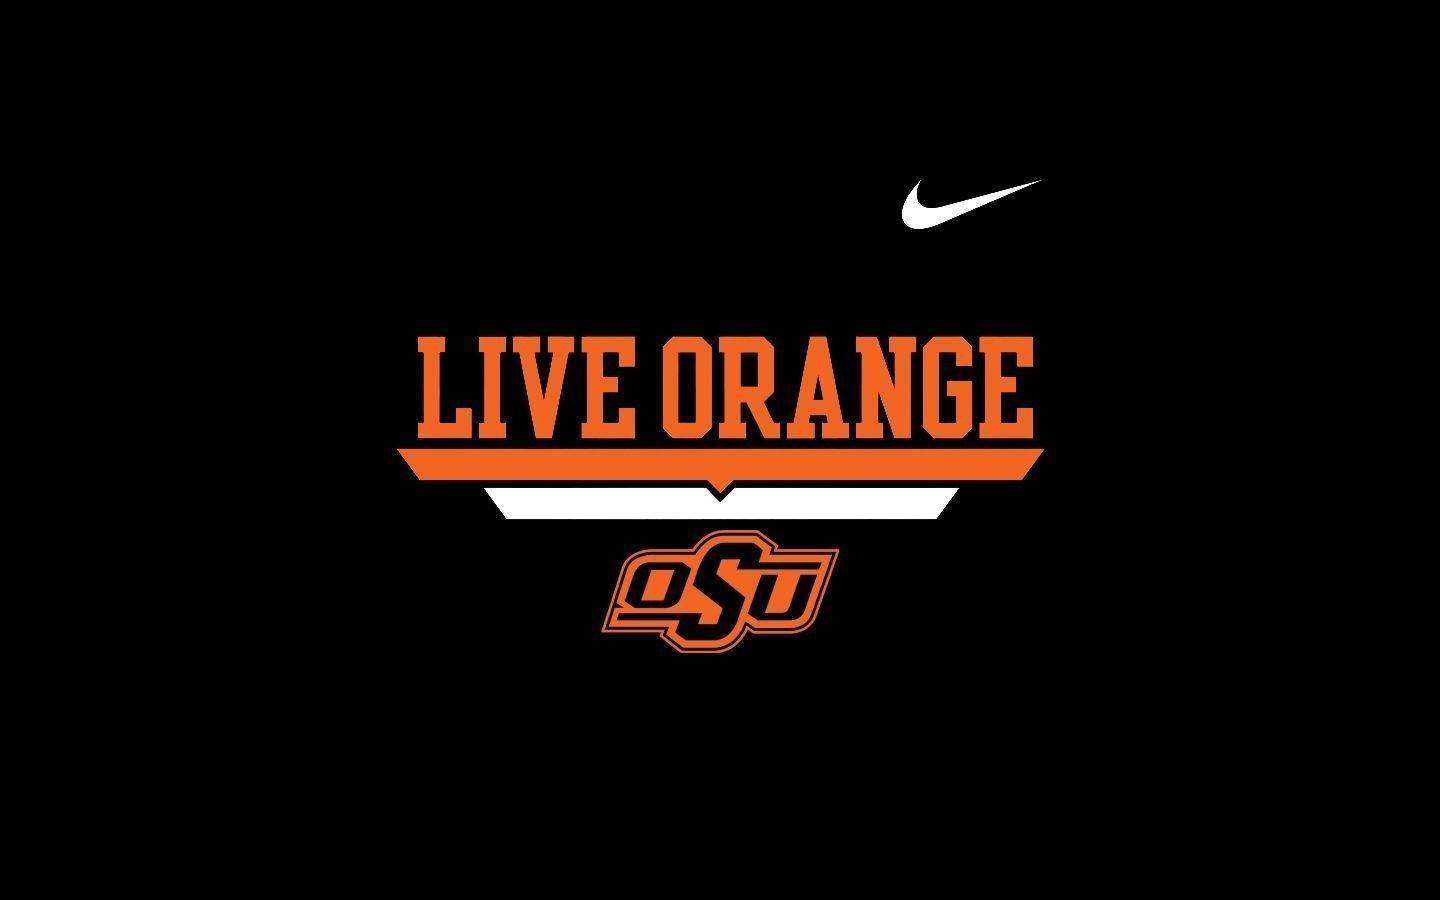 10 Latest Oklahoma State Football Wallpaper Full Hd 1920 1080 For Pc Background Oklahoma State Football Oklahoma State Football Wallpaper